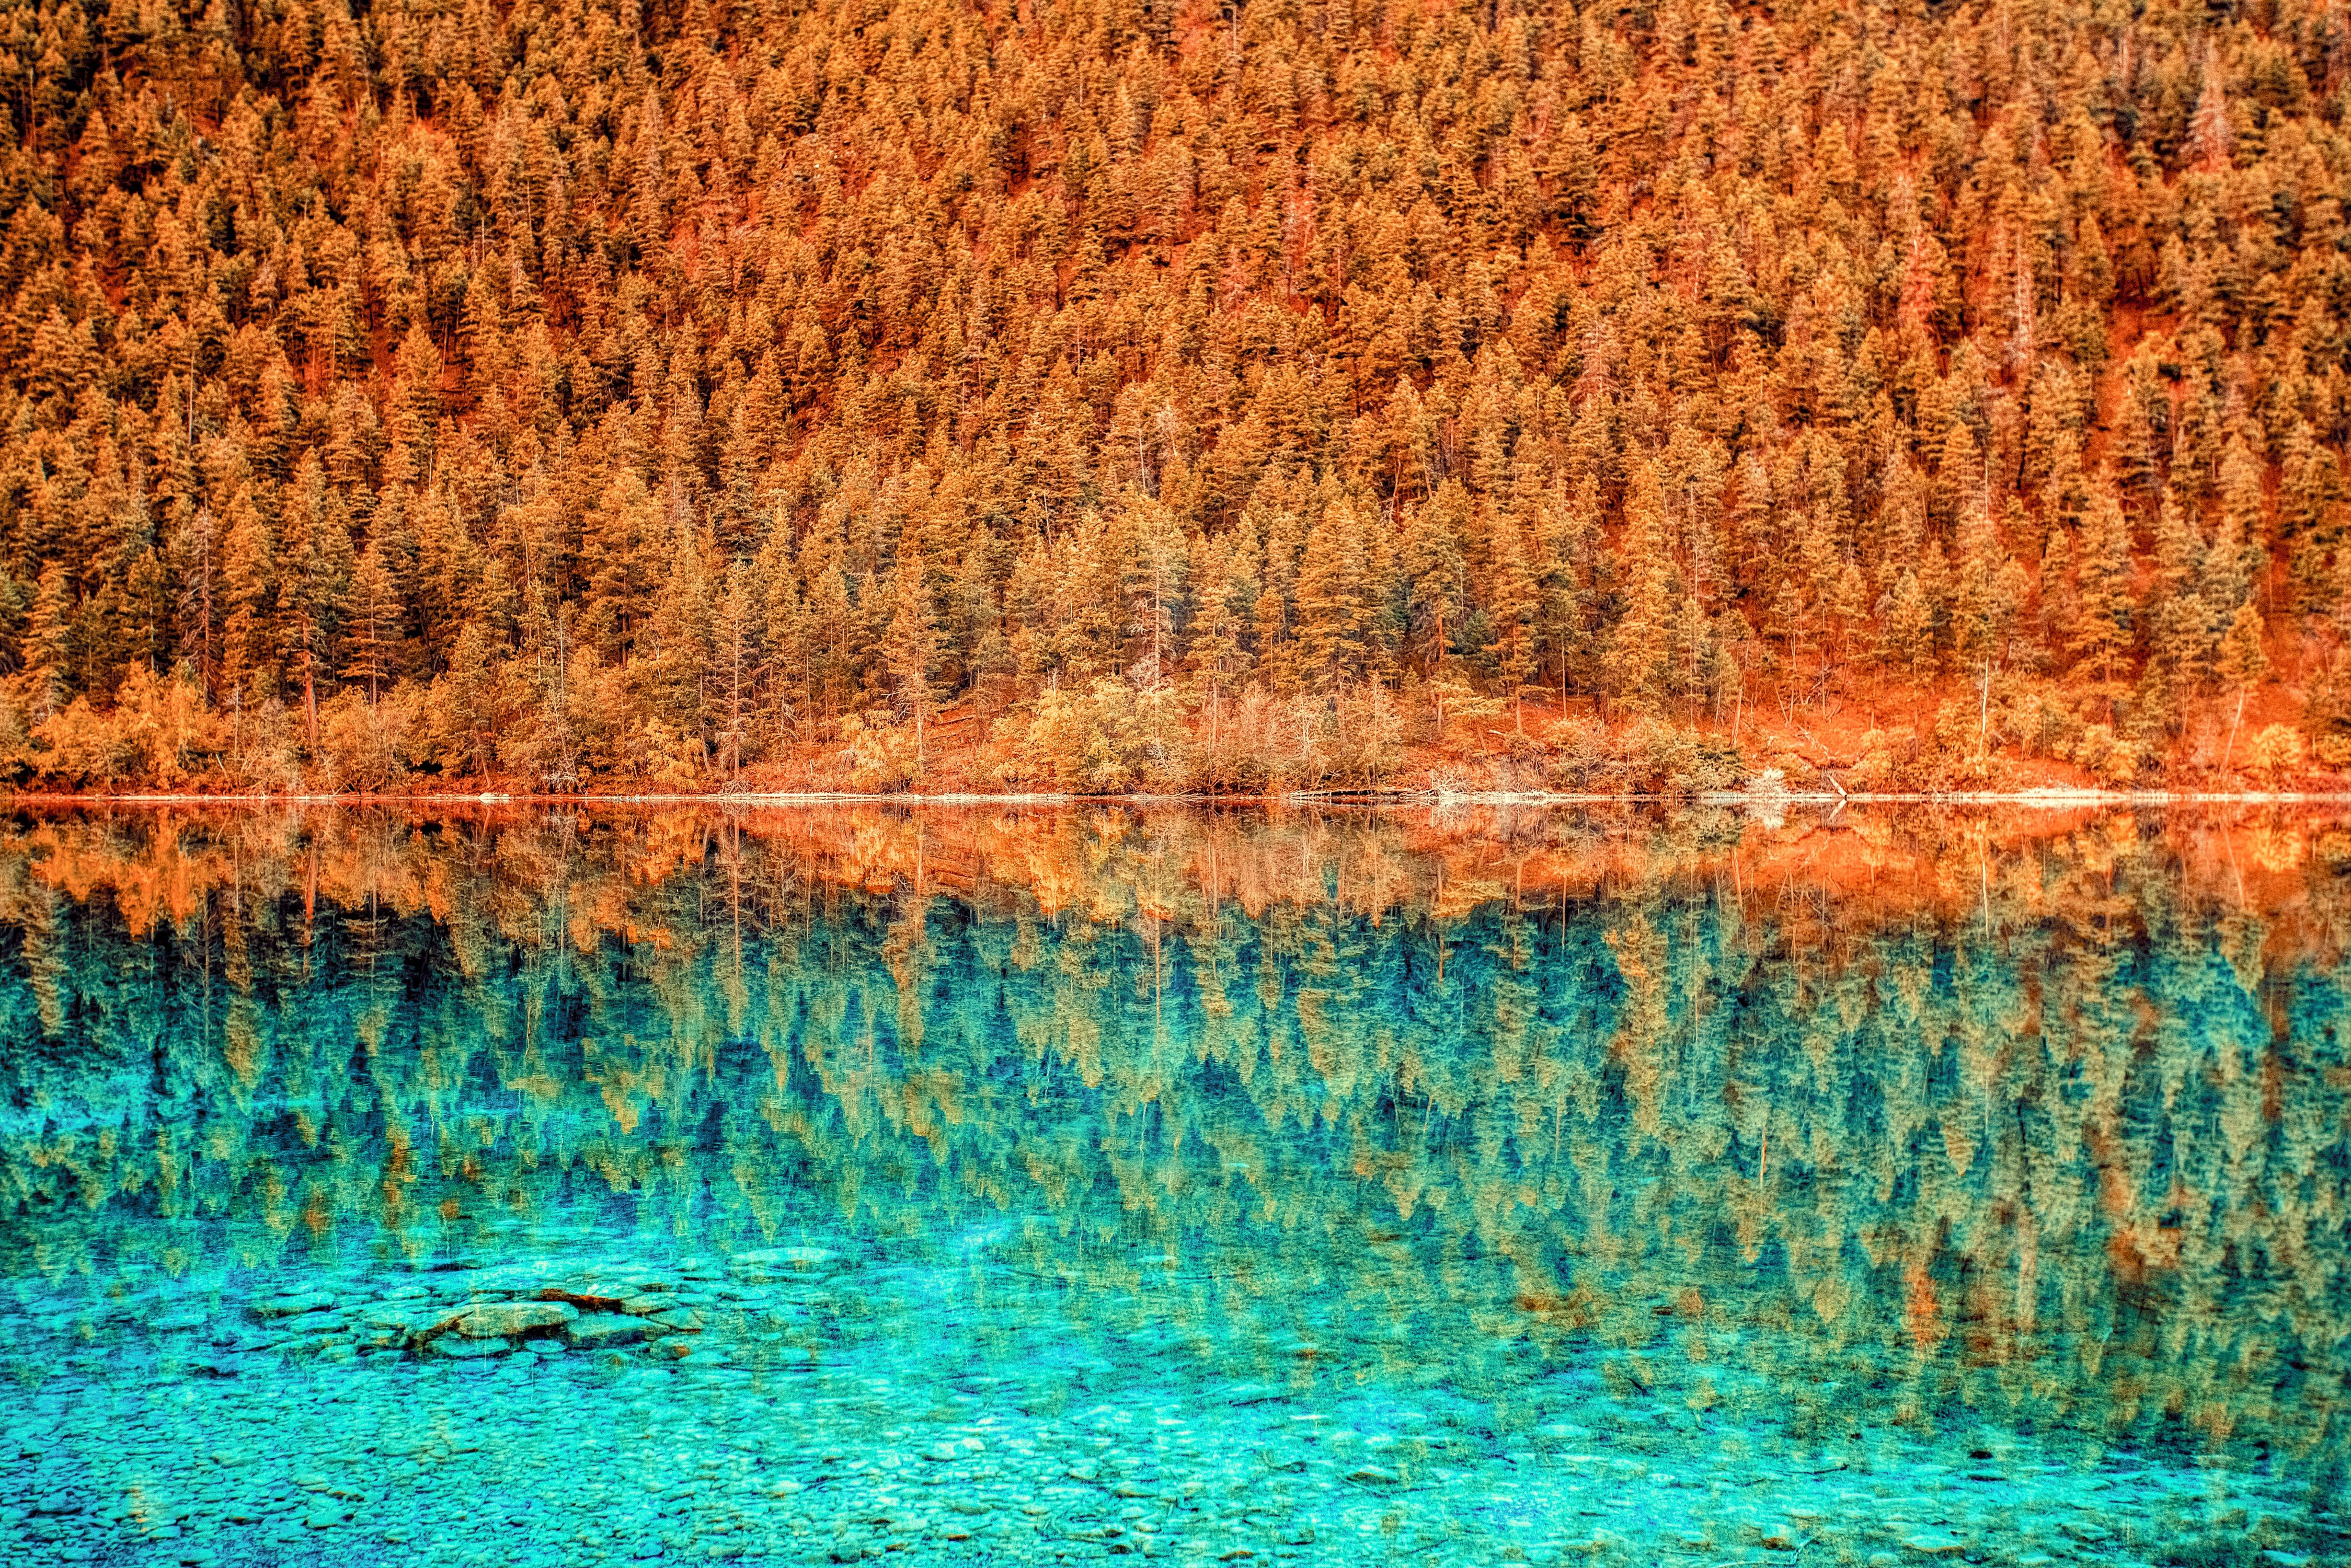 Orange forest reflecting as blue trees in the water.